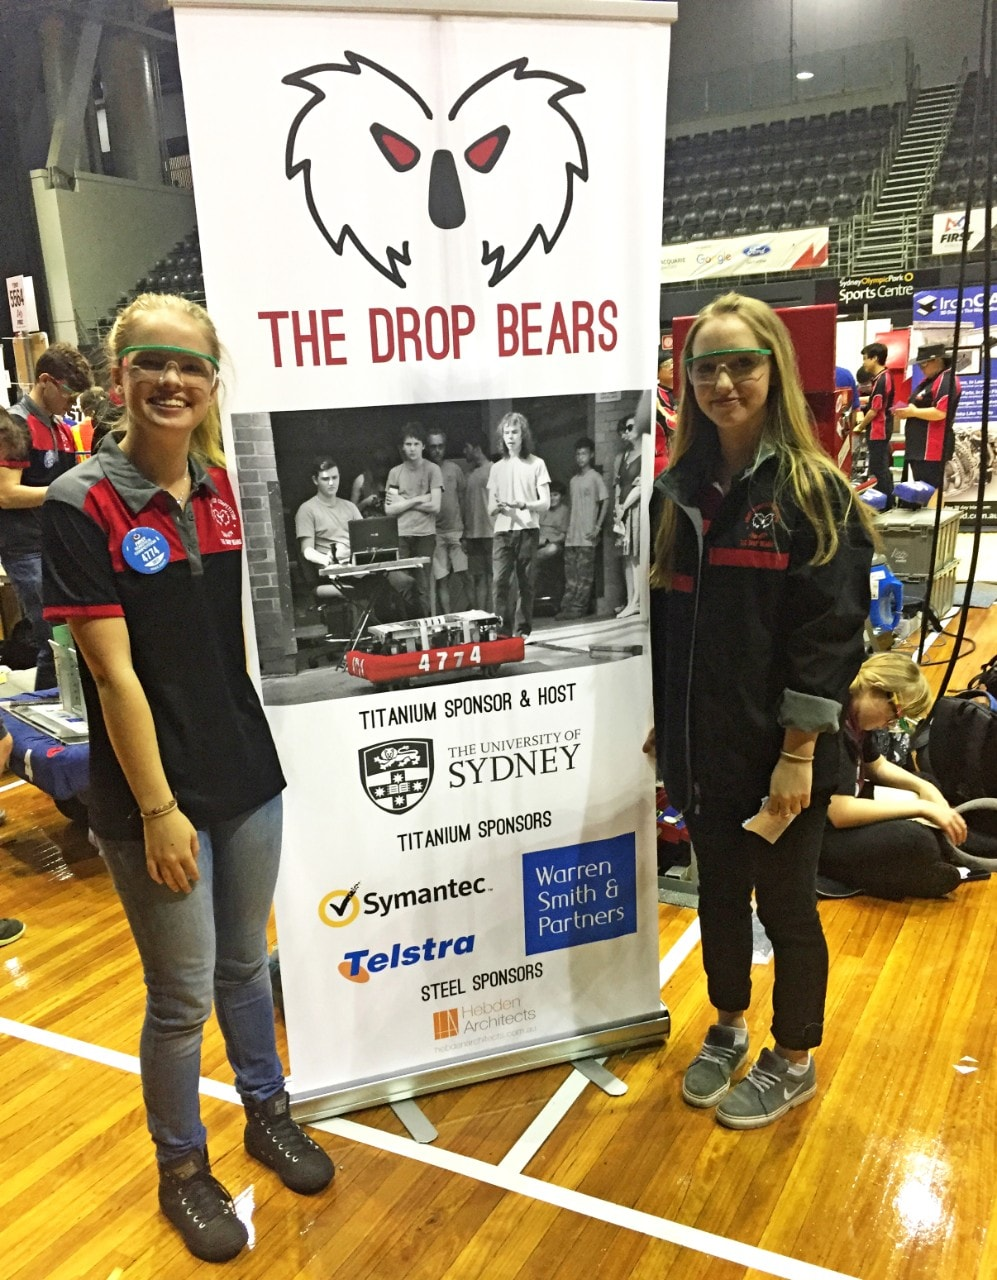 Two girls standing next to Drop Bears banner